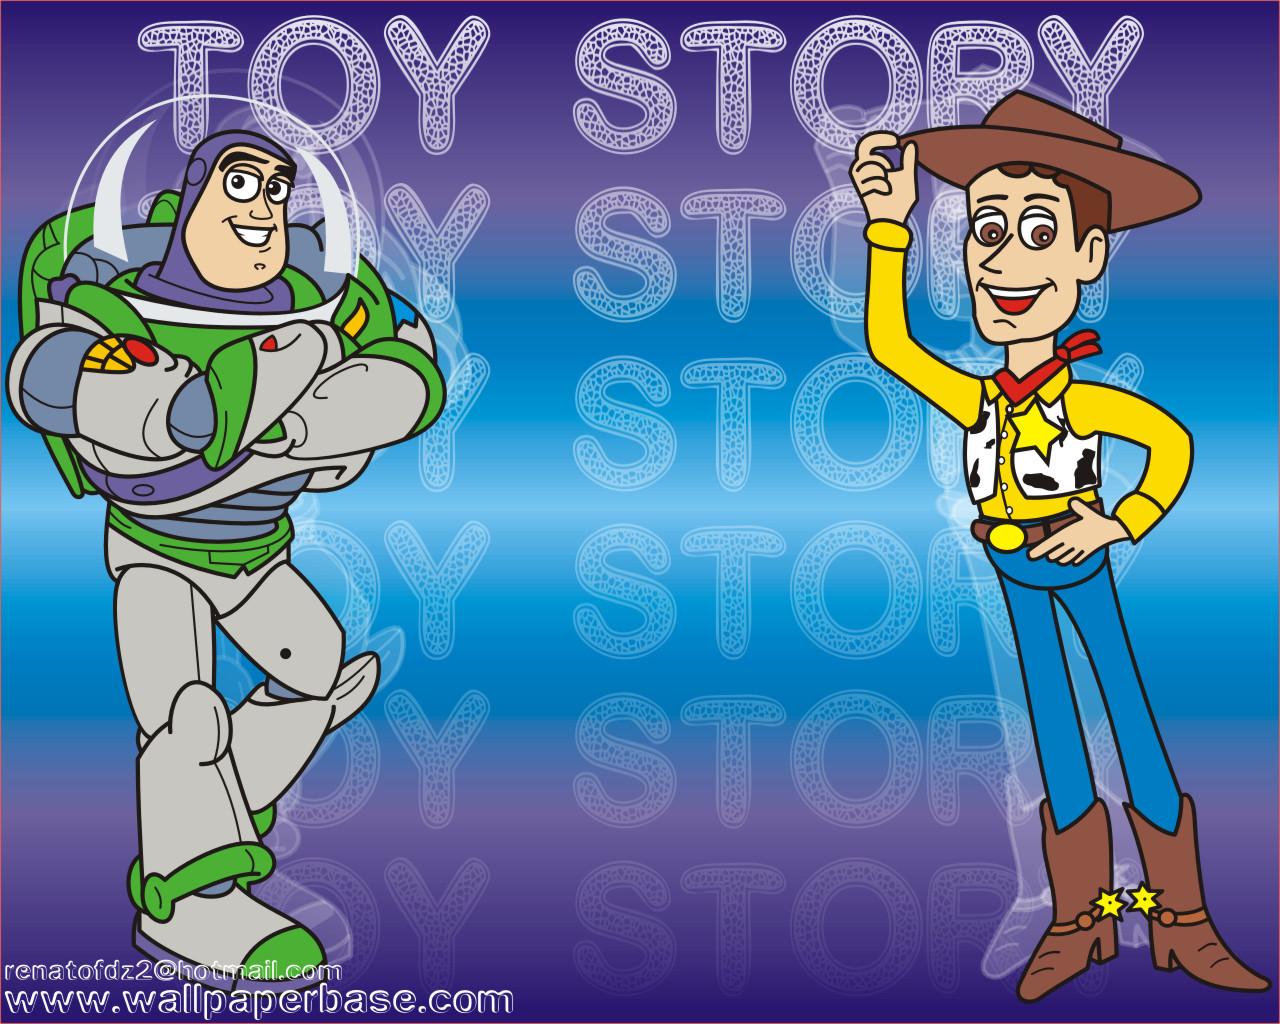 toy story photo or wallpaper